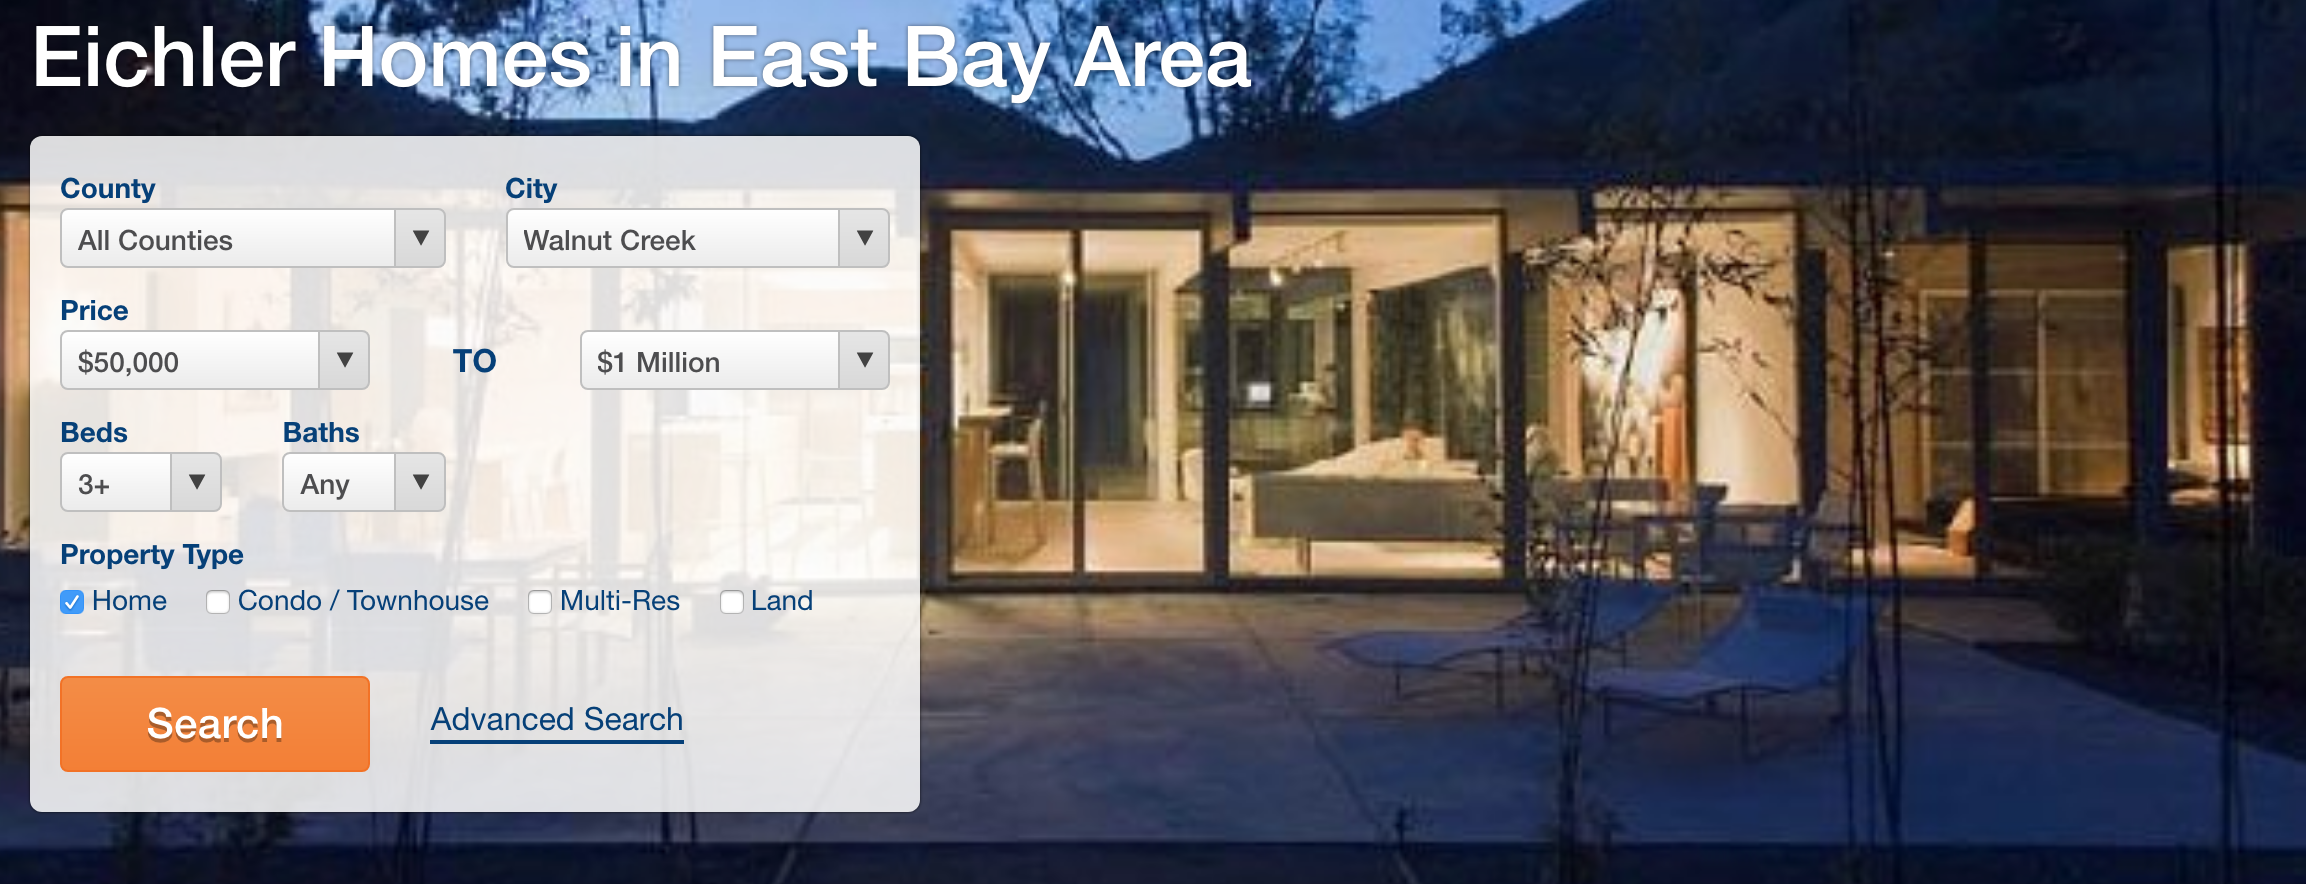 Eichler Homes in East Bay Area